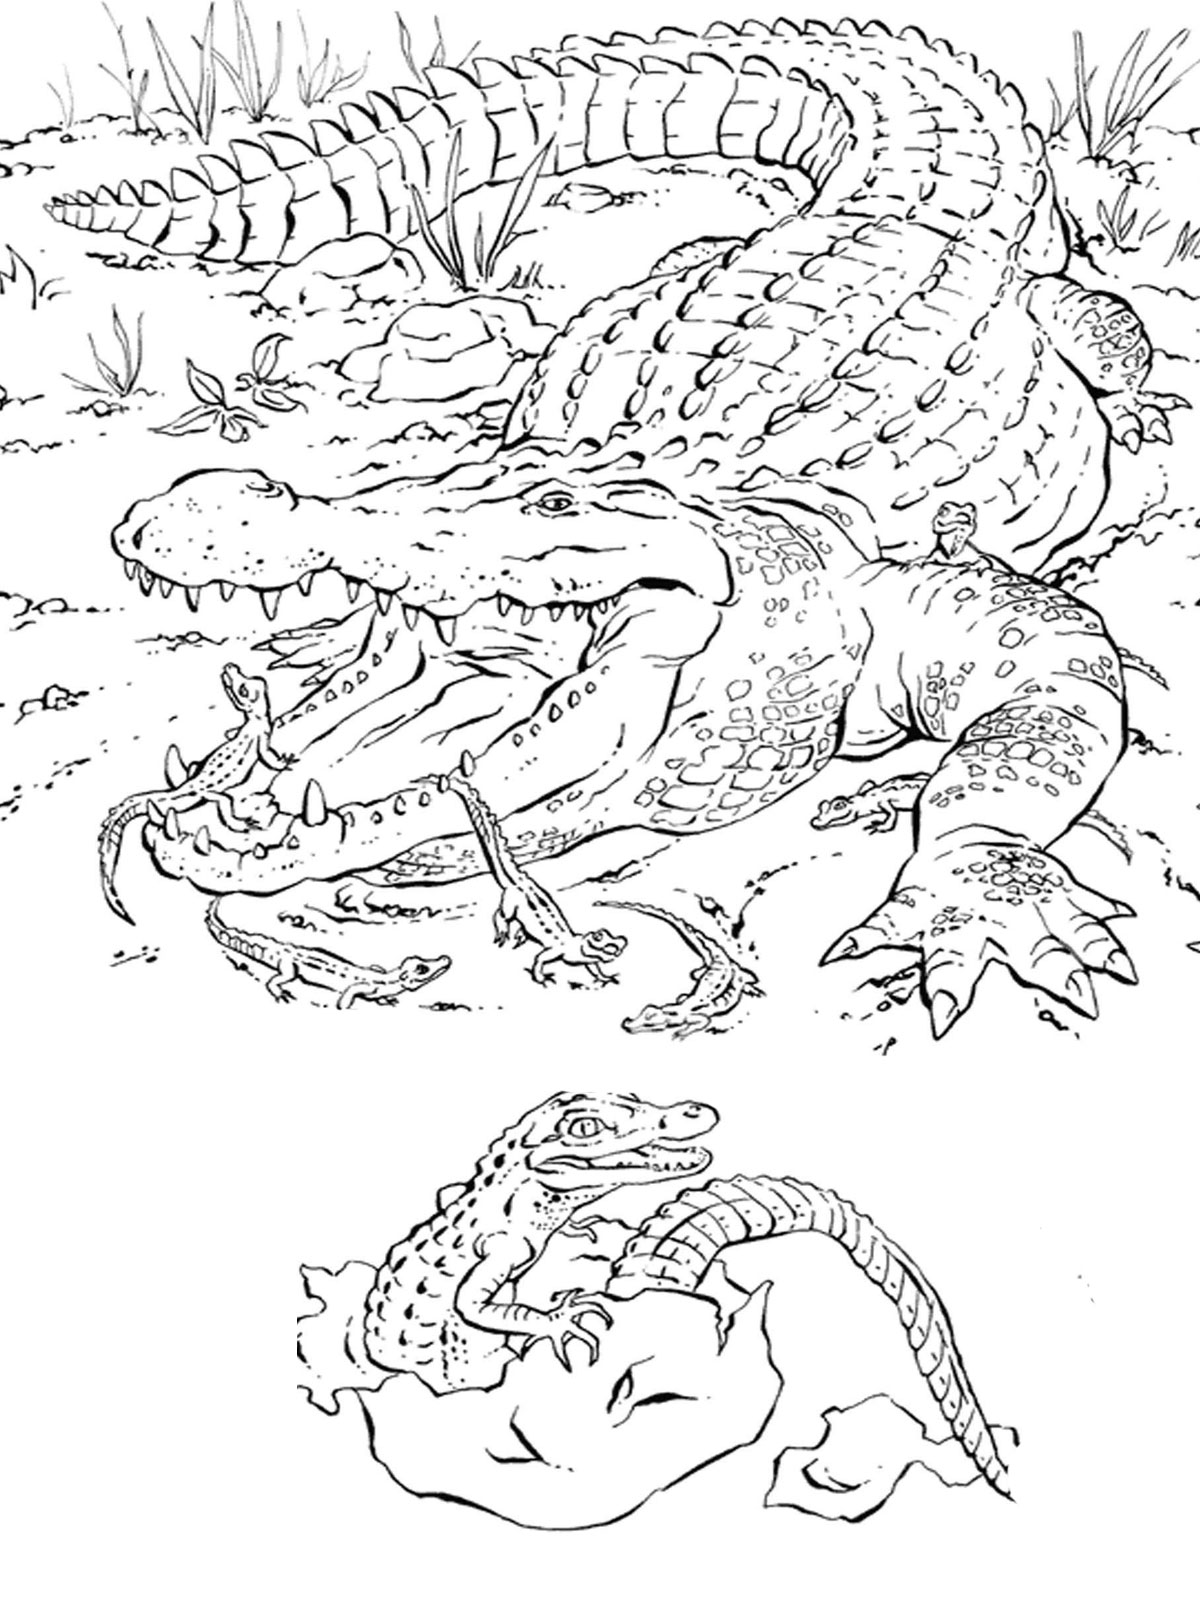 Florida animals coloring pages download and print for free | colouring pages printable animals